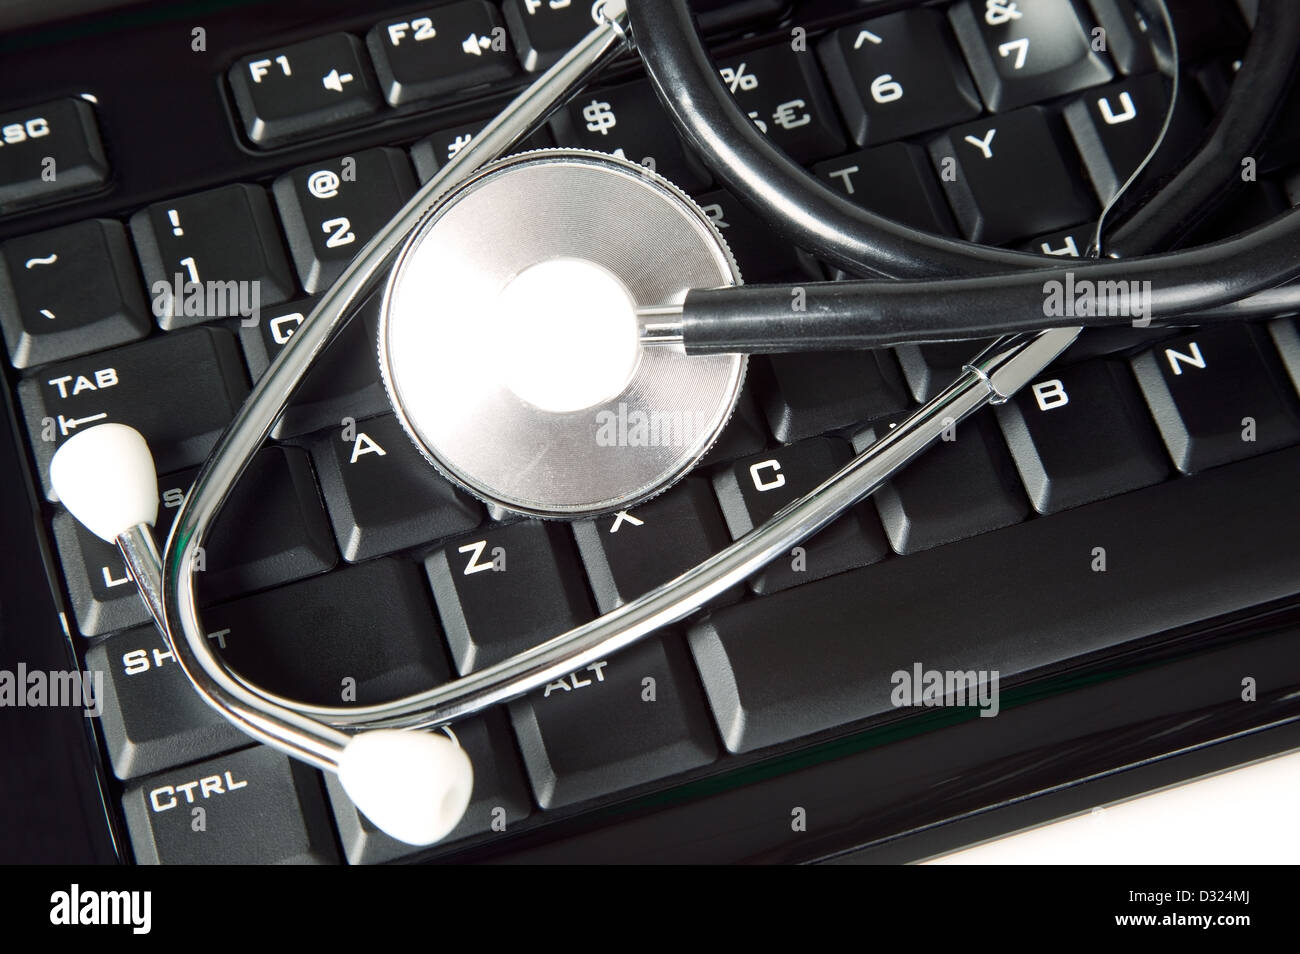 A Medicine Stethoscope Is Lying On Black Keyboard Stock Photo Electronic Auto